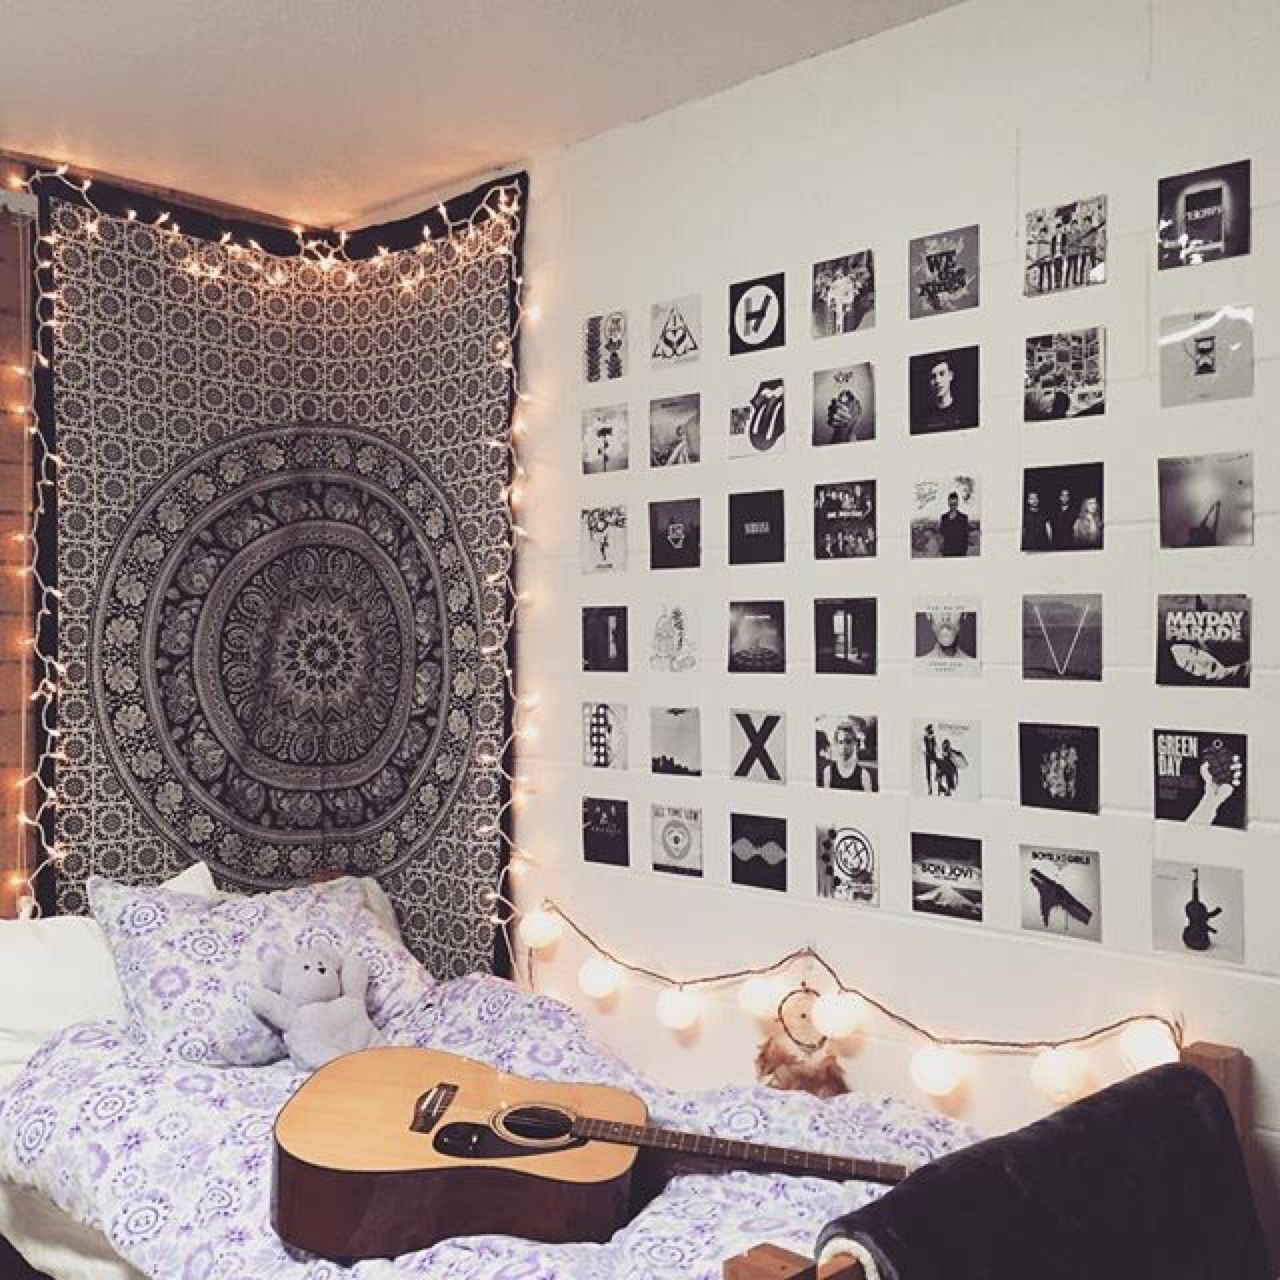 Tumblr Room Wall Decor Source Myroomspo Tapestry Bedroom Tumblr Bedroom